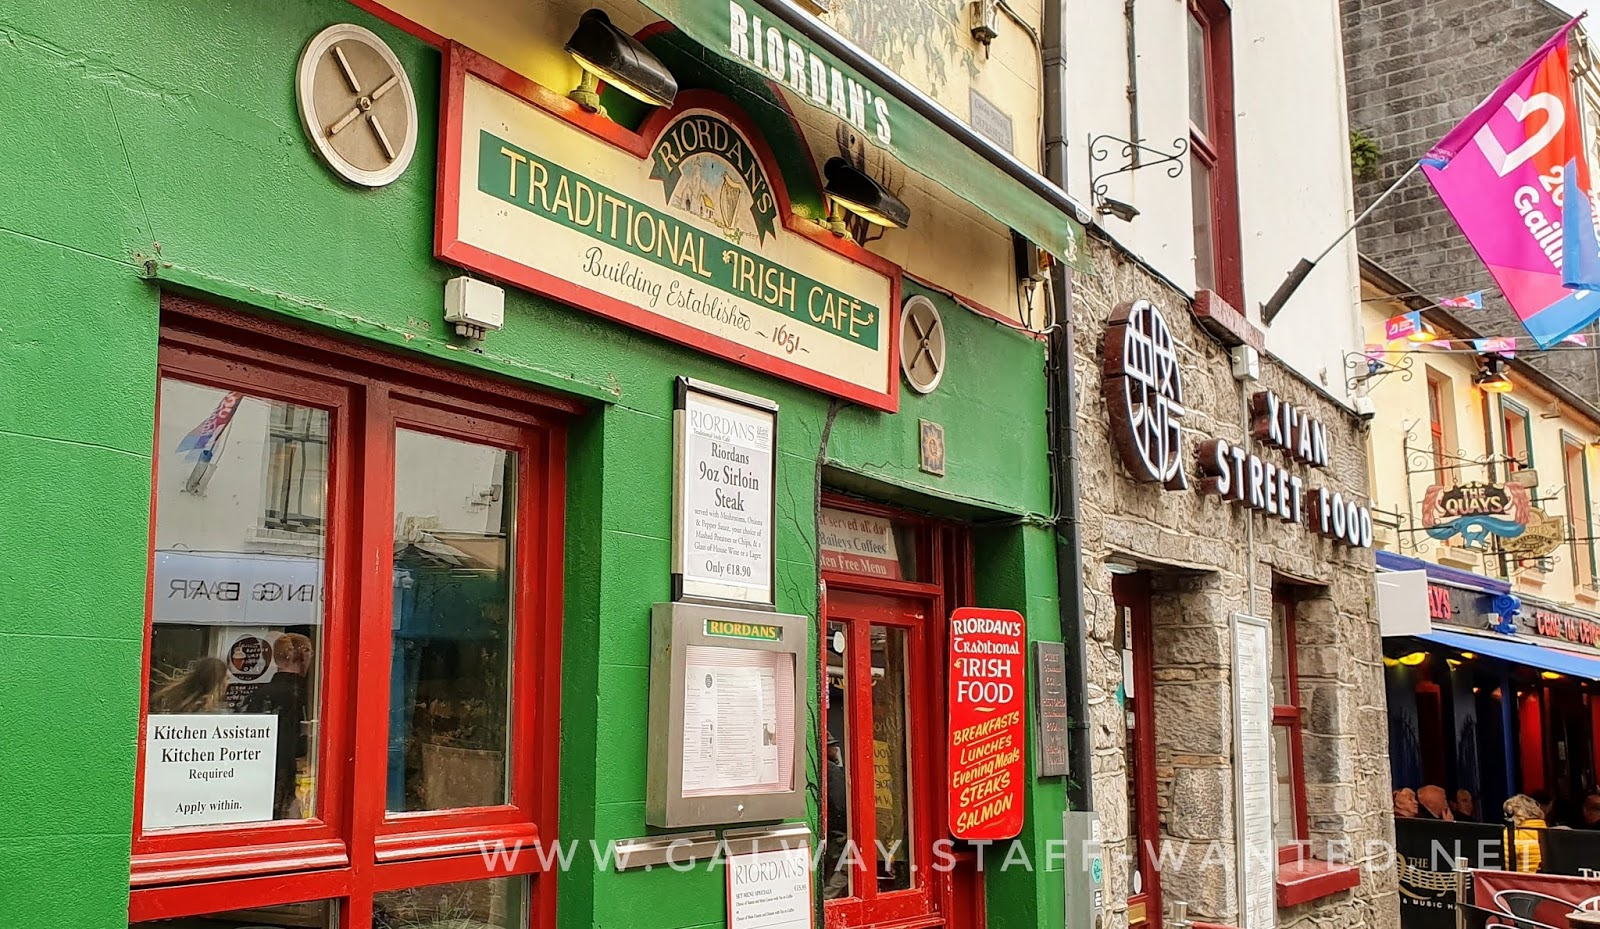 Green shopfront with red windows - sign traditional Irish food - evening means steaks - salmon- best bacon and cabbage in Galway city centre - irish stew - ham and turkey - chicken maryland